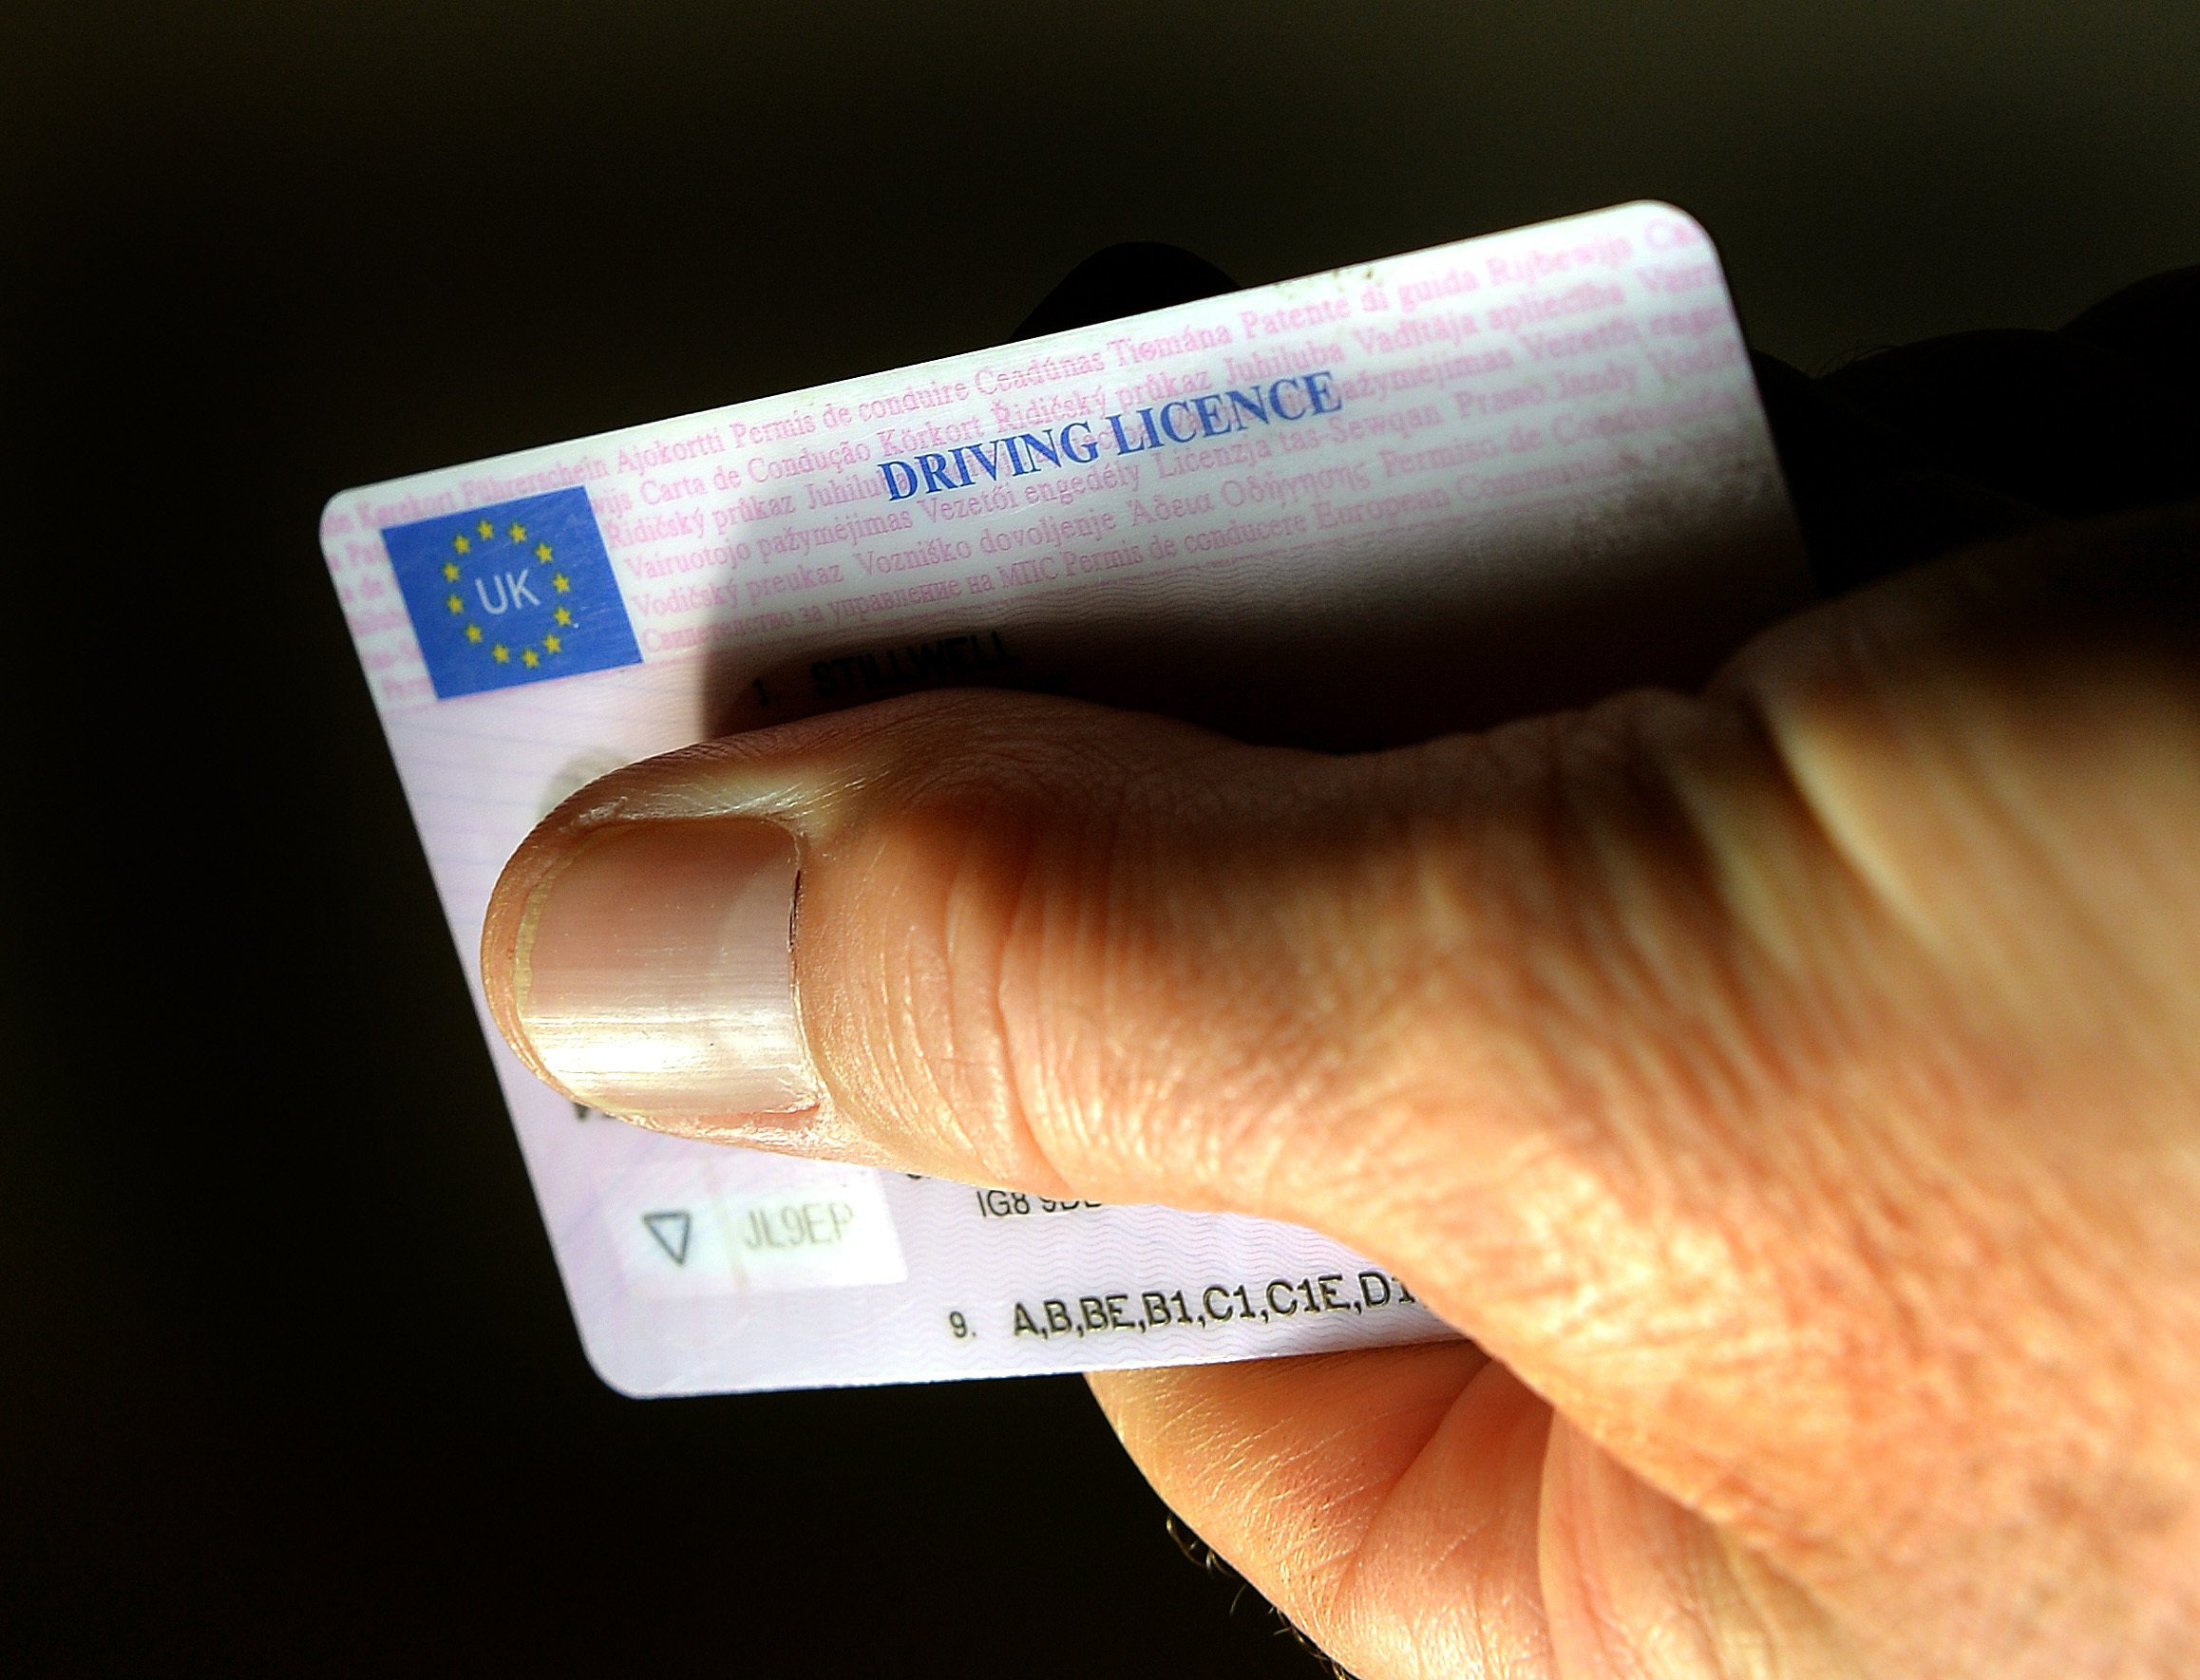 File photo dated 29/09/2014 of an UK driving licence identity card, as the Government has warned UK driving licences may no longer be valid on their own to drive in the European Union if there is a no-deal Brexit. PRESS ASSOCIATION Photo. Issue date: Thursday September 13, 2018. Drivers could need International Driving Permits (IDP) if the EU does not agree to recognise UK licences, according to new guidance. See PA story POLITICS Brexit Driving. Photo credit should read: John Stillwell/PA Wire